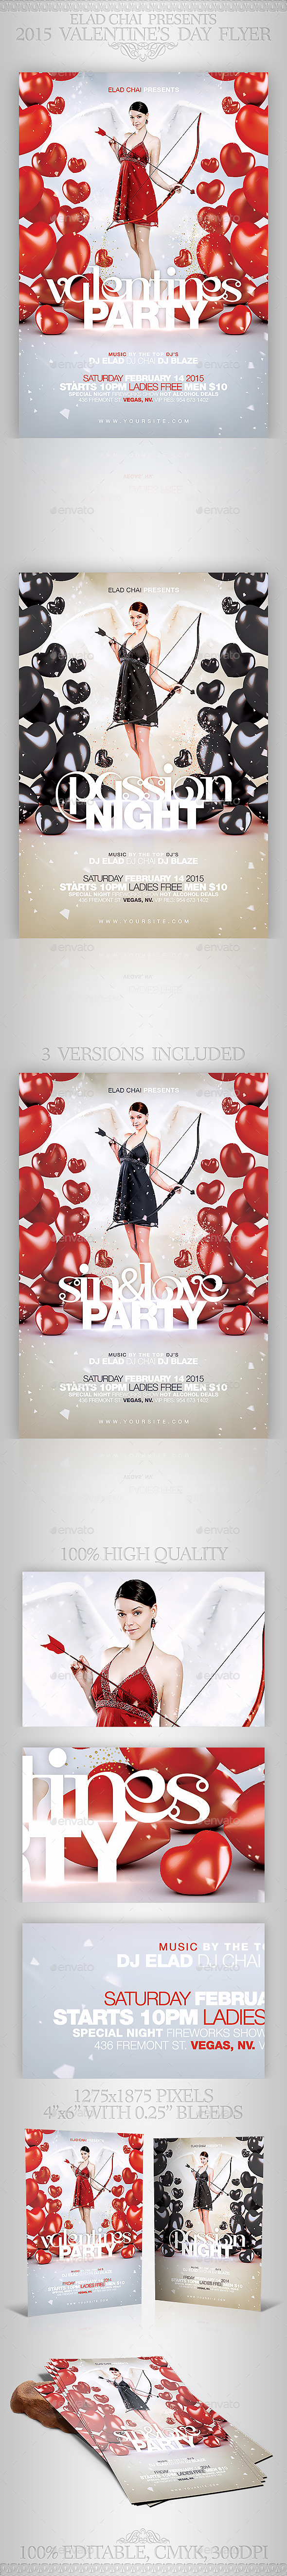 3 in 1 Valentine's Passion Flyer Template - Holidays Events